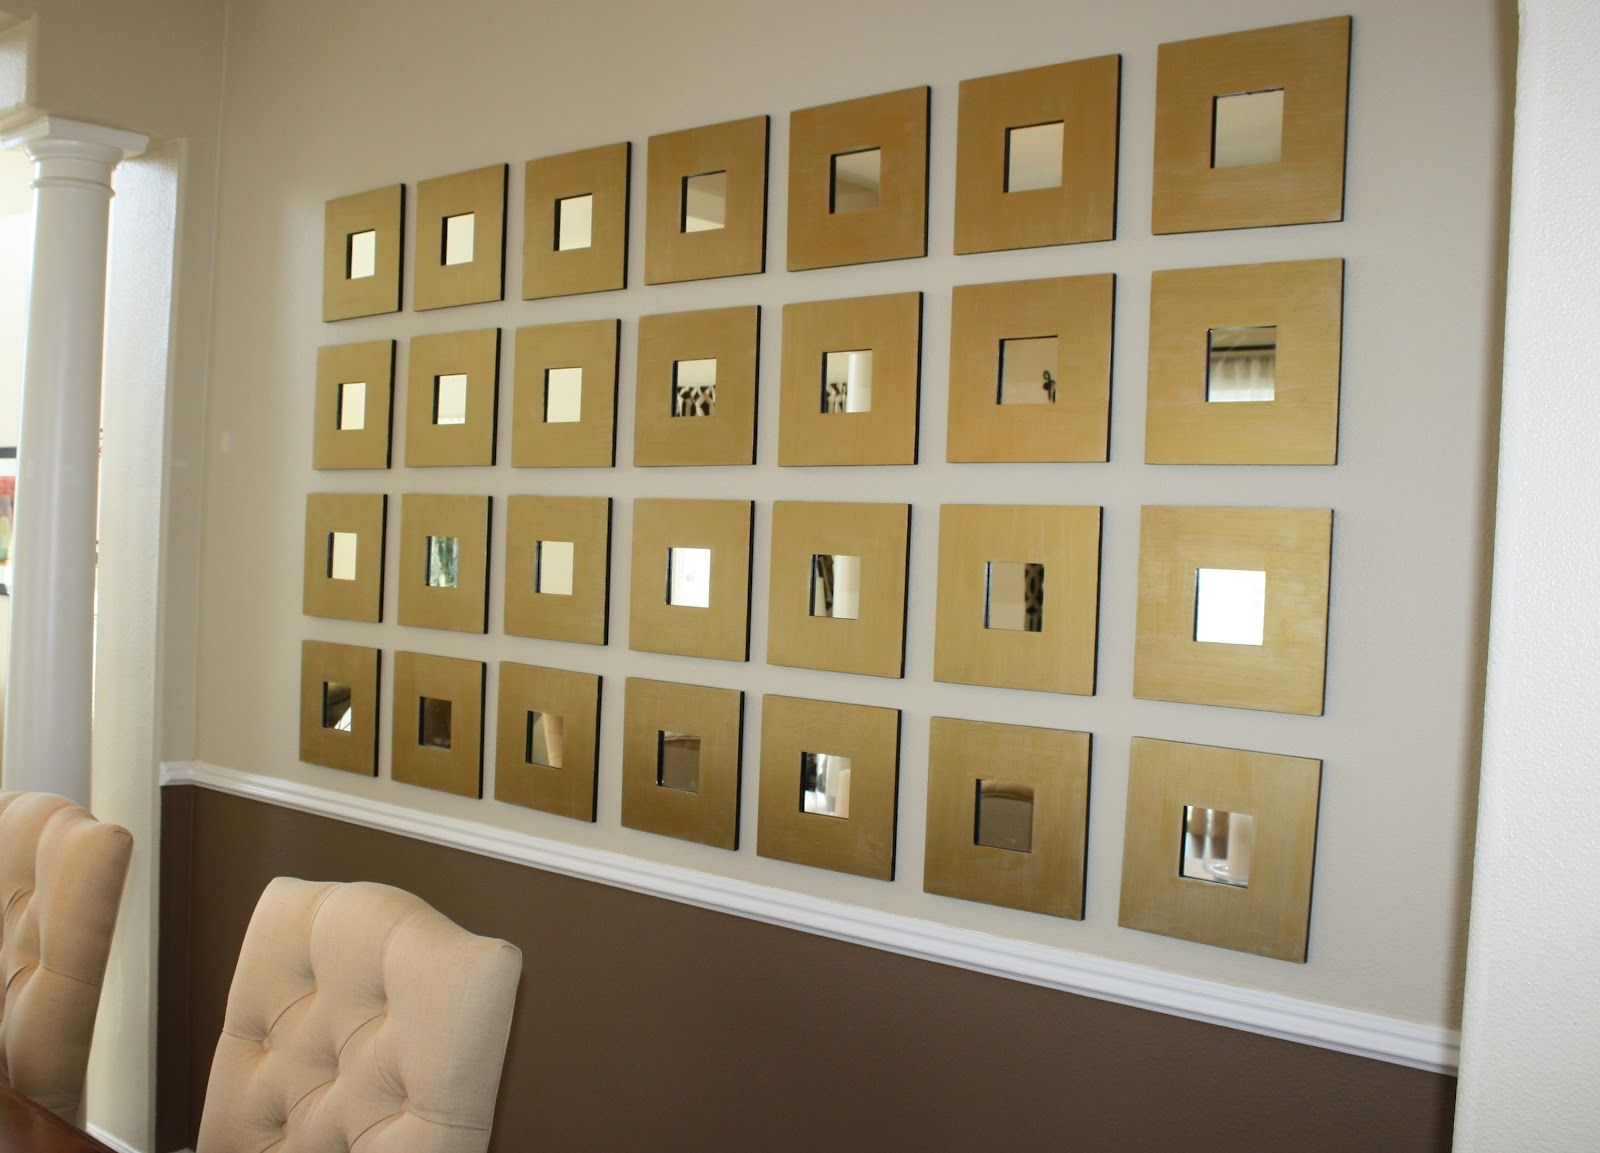 Ikea malma wall decoration made by me pinterest wall transformations by design mirrored wall project amipublicfo Gallery